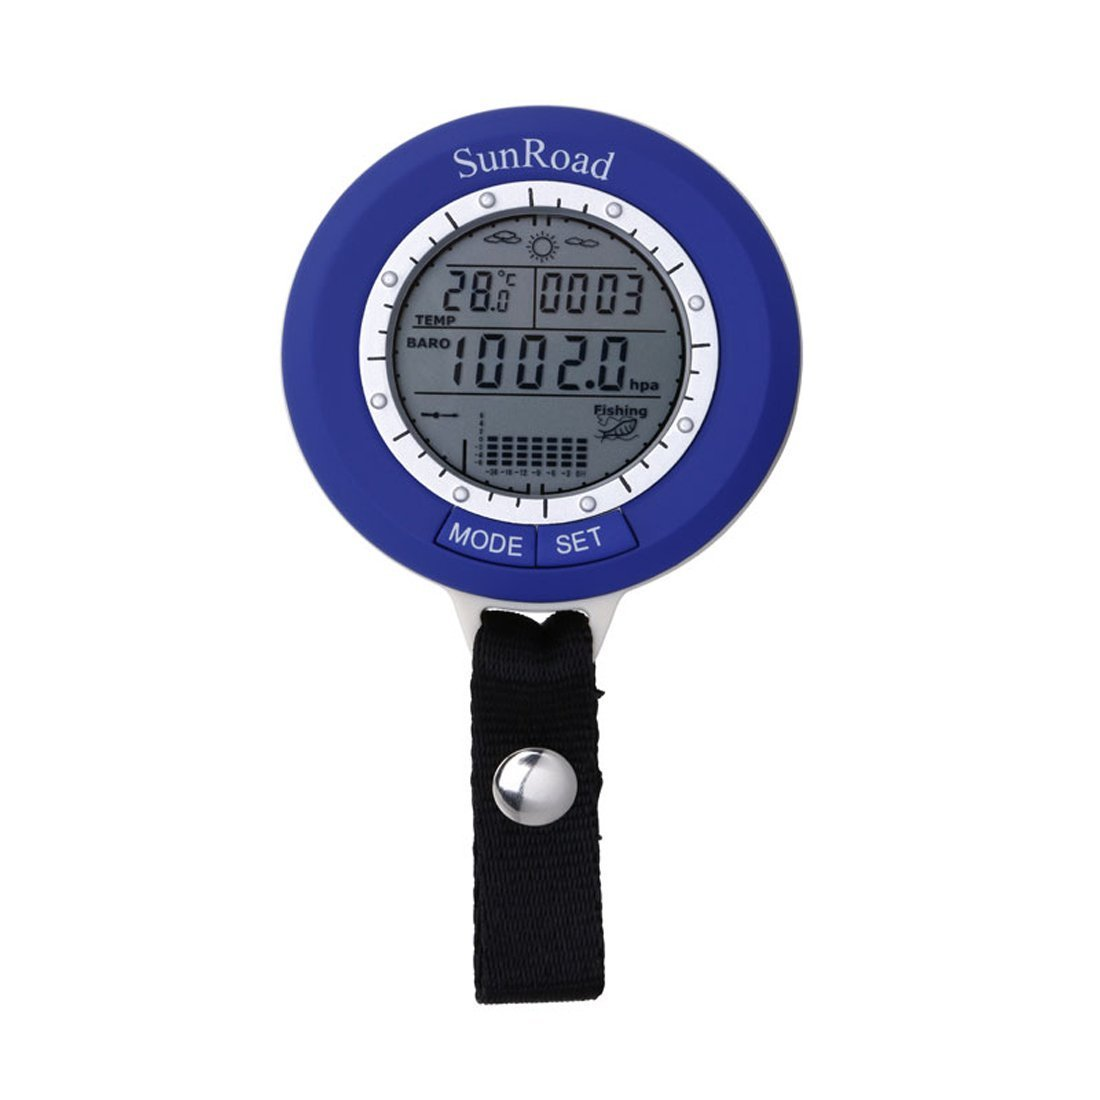 SUNROAD SR204 Mini LCD Digital Fishing Barometer Hand-hold Watch Altimeter Thermometer Lure Line Fish Finder Watch Man